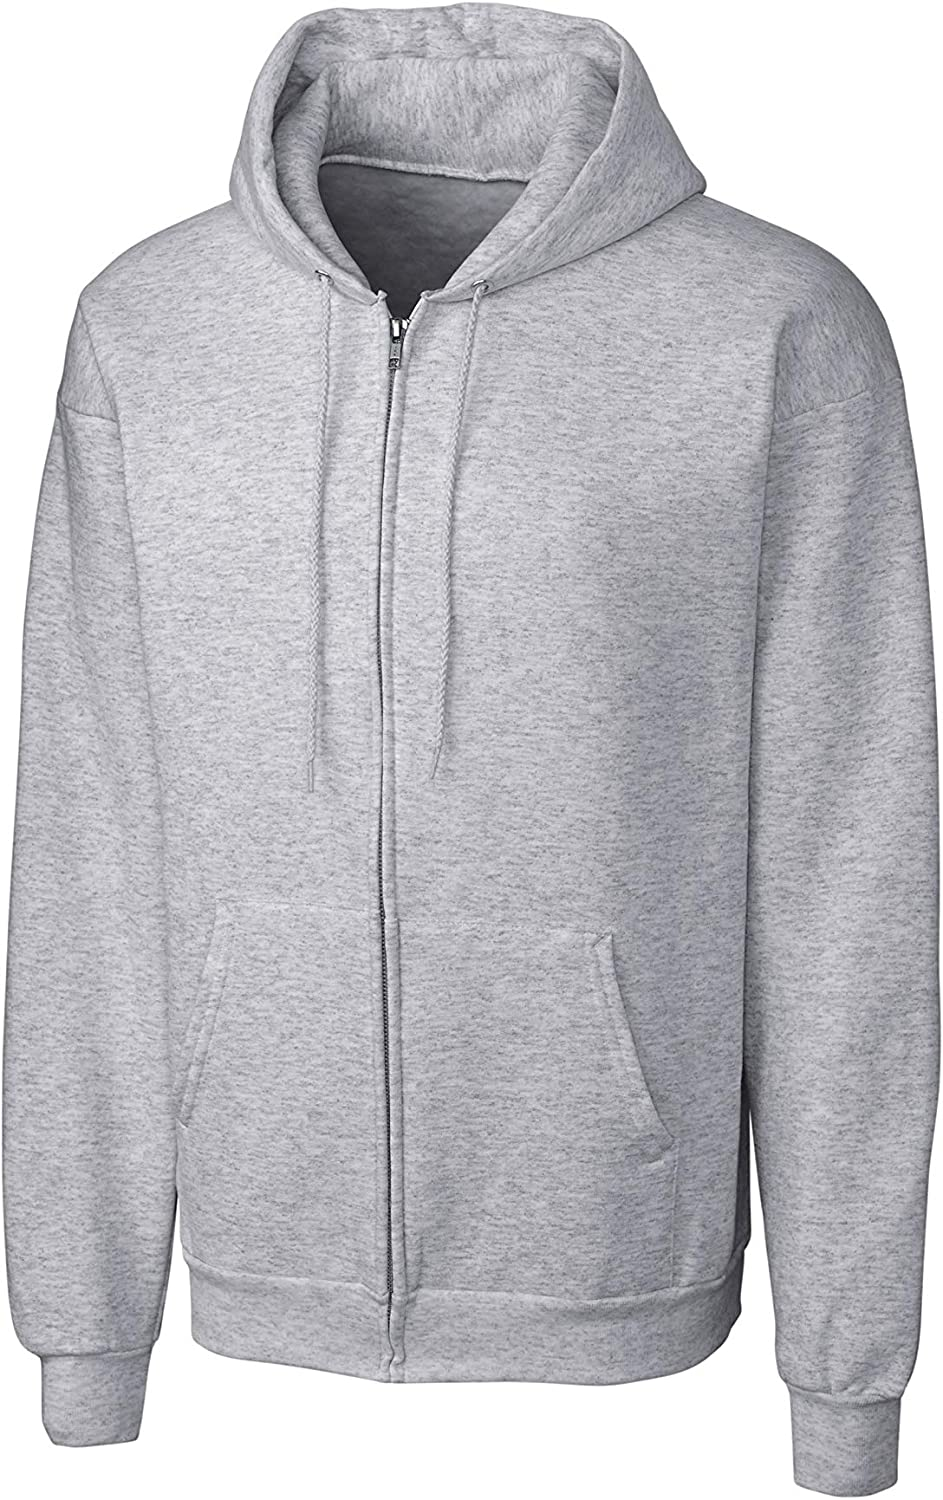 All items in the store StoutMensShop Regular Big Tall Soft Full Hoodie Zip Max 57% OFF Sweat Hooded